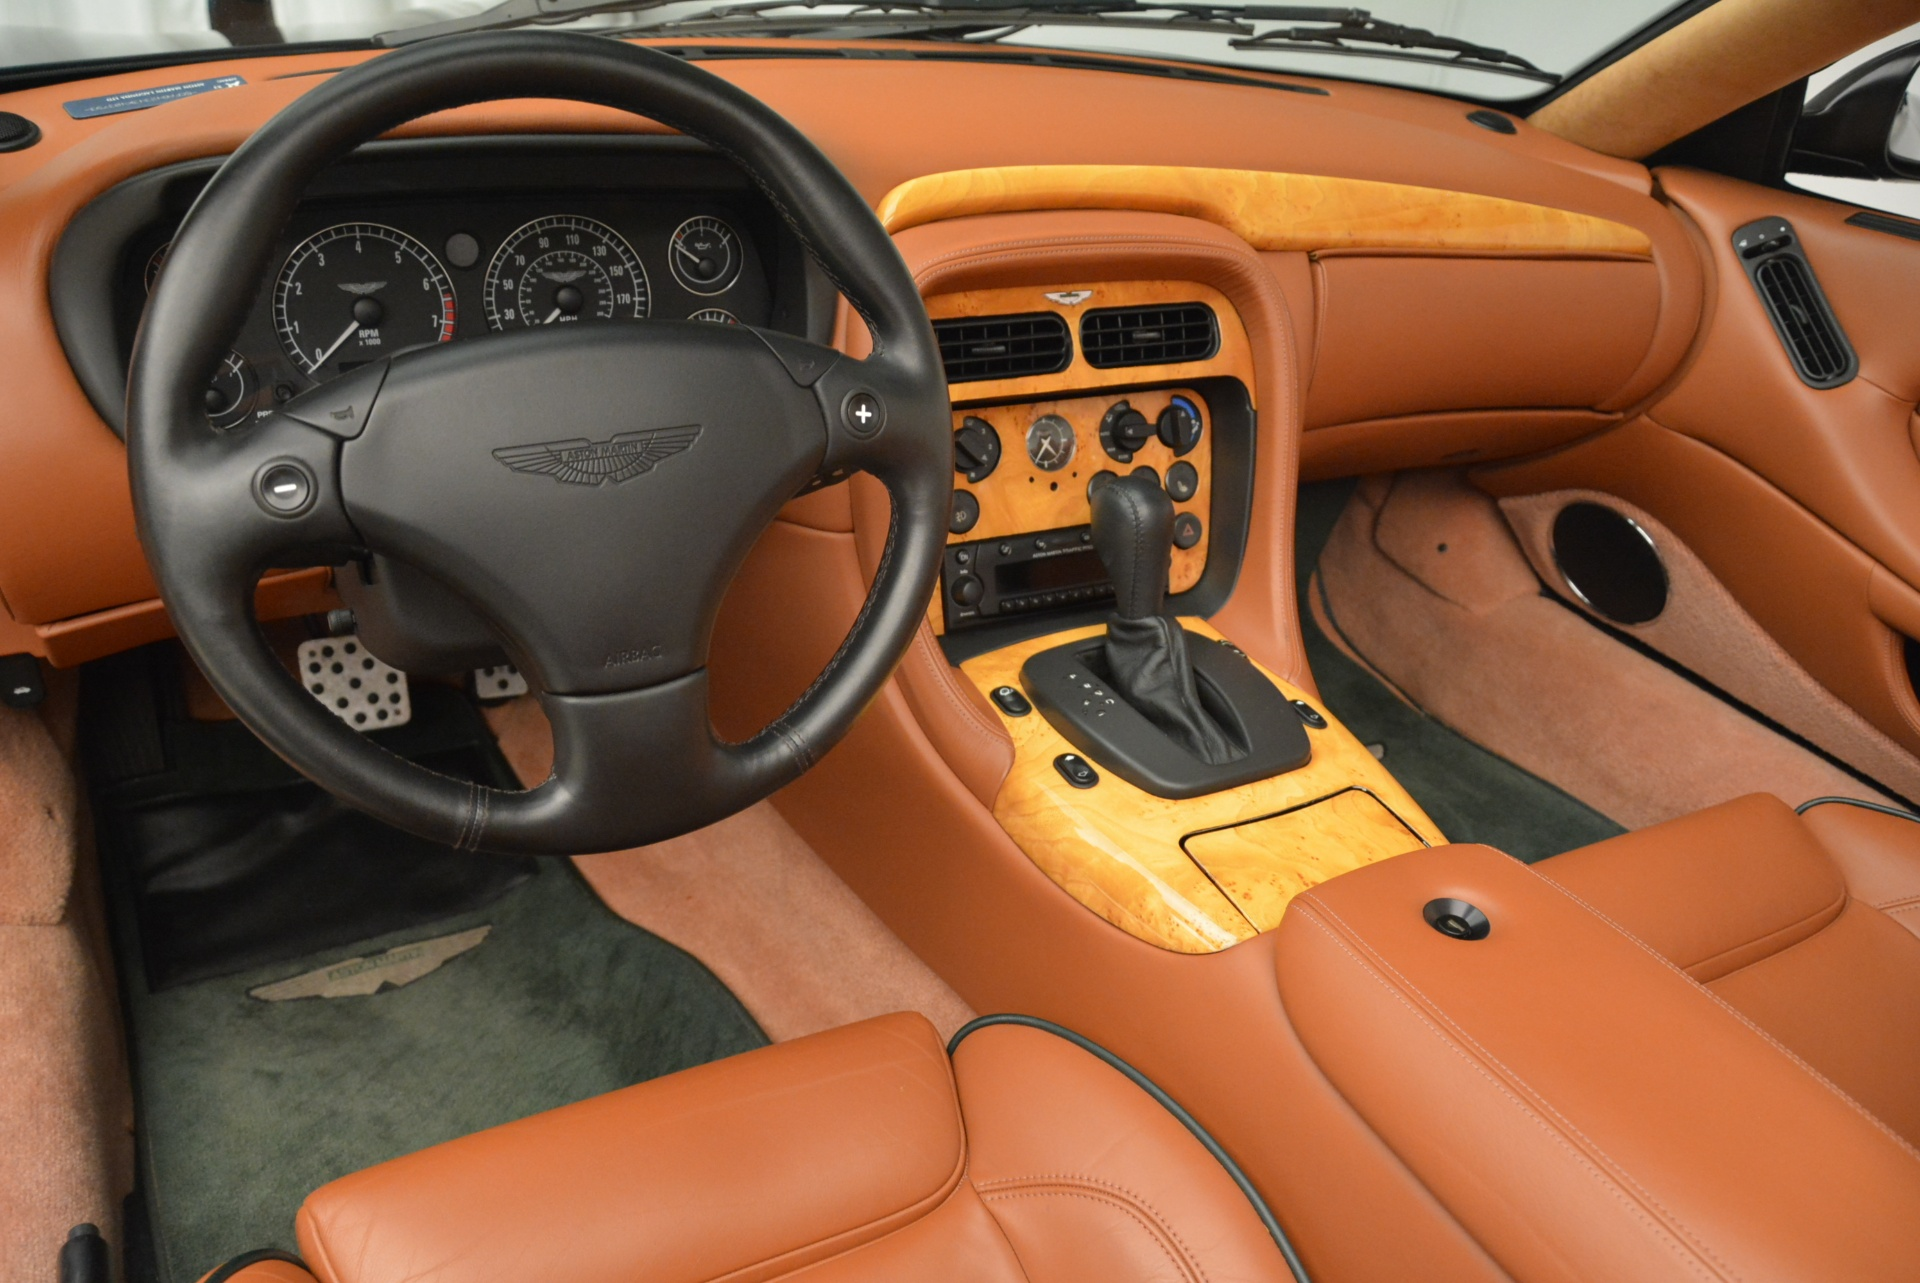 Used 2003 Aston Martin DB7 Vantage Volante For Sale In Greenwich, CT 2084_p24